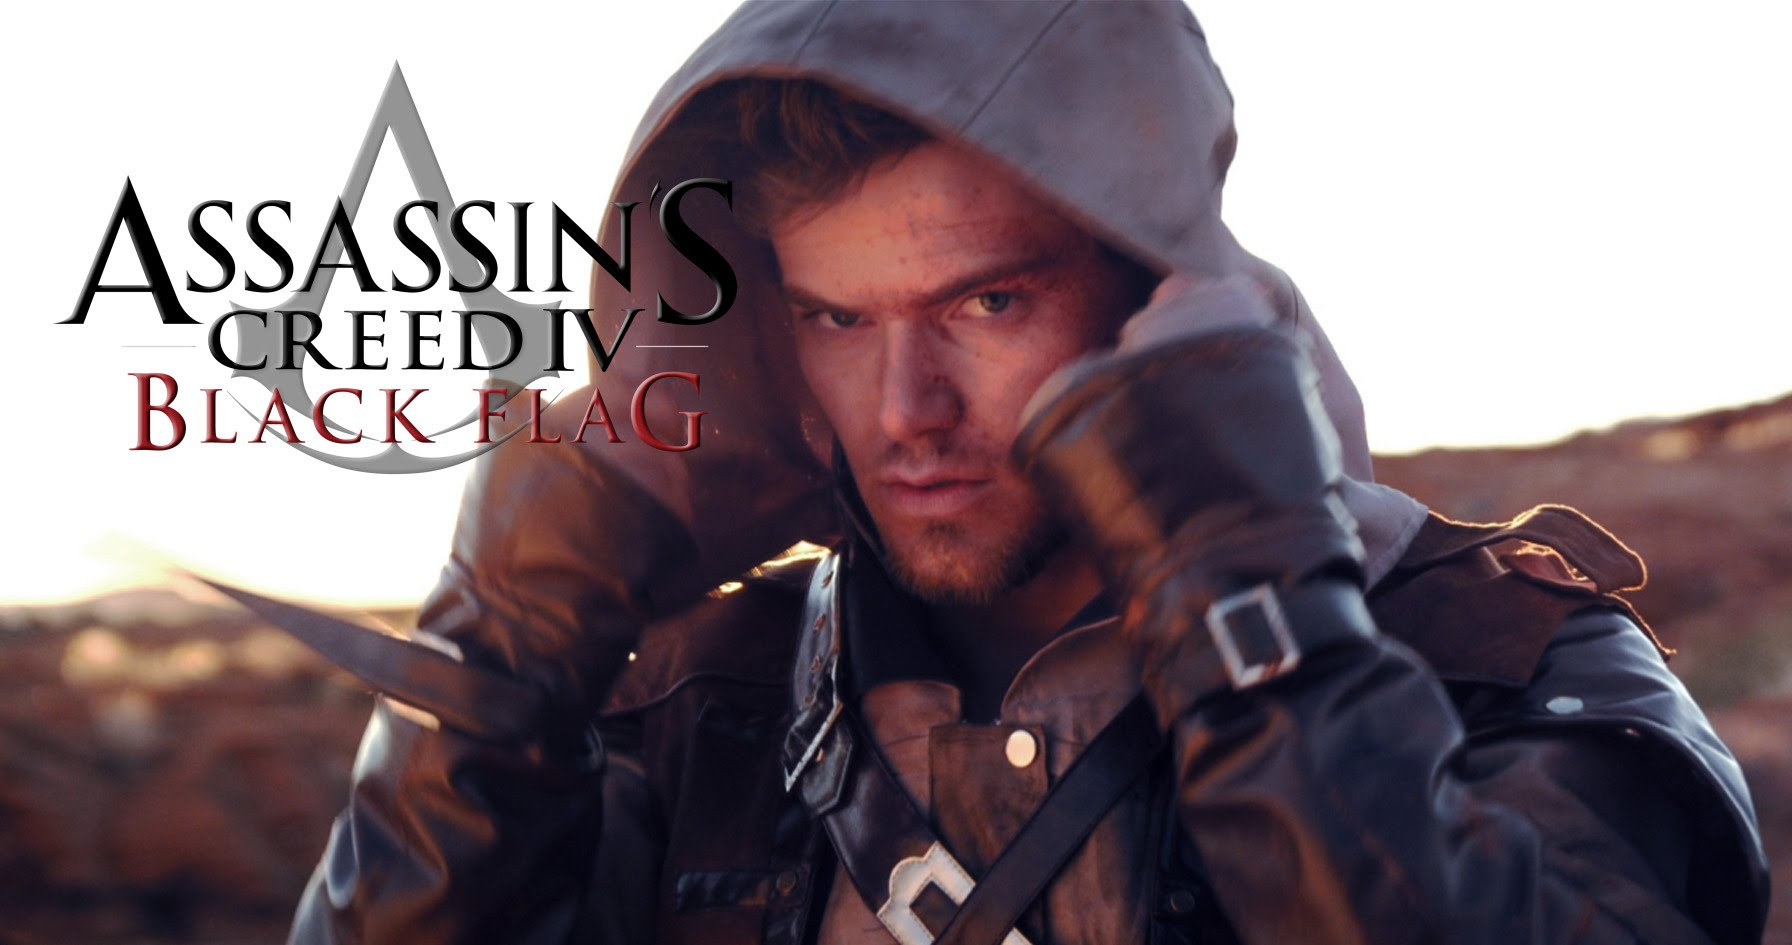 Assassins Creed Black Flag Short Film 2014 Imdb